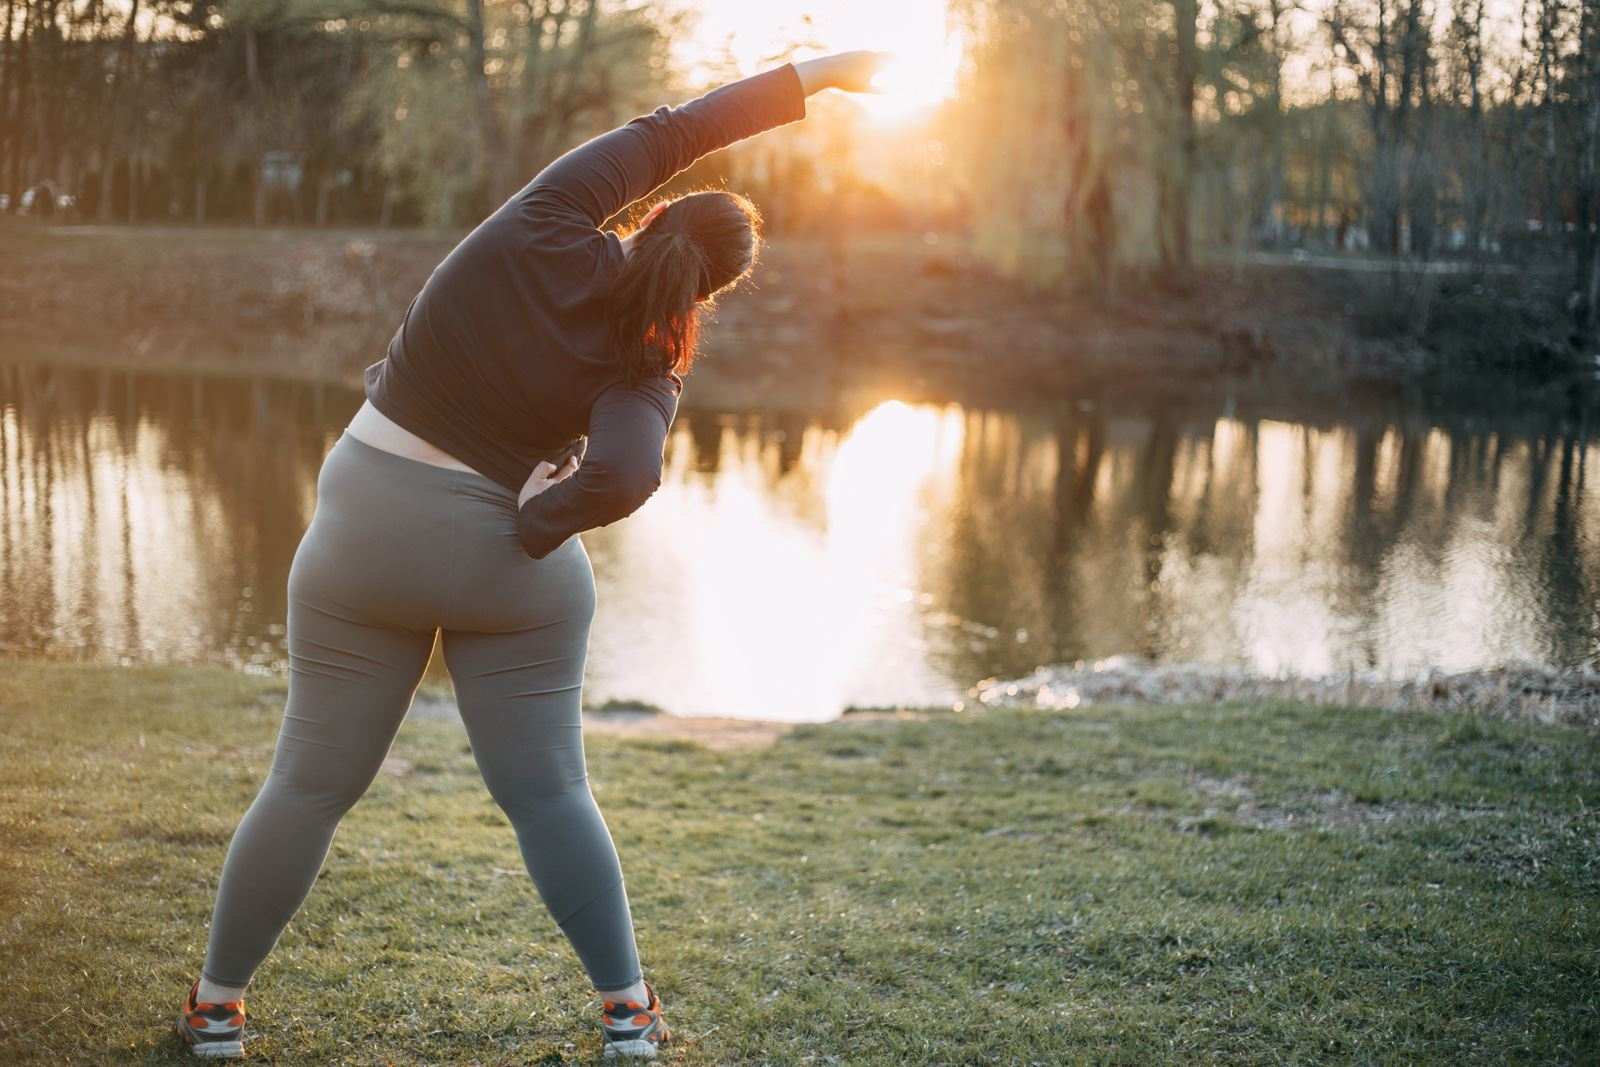 Obese woman stretching - sunset